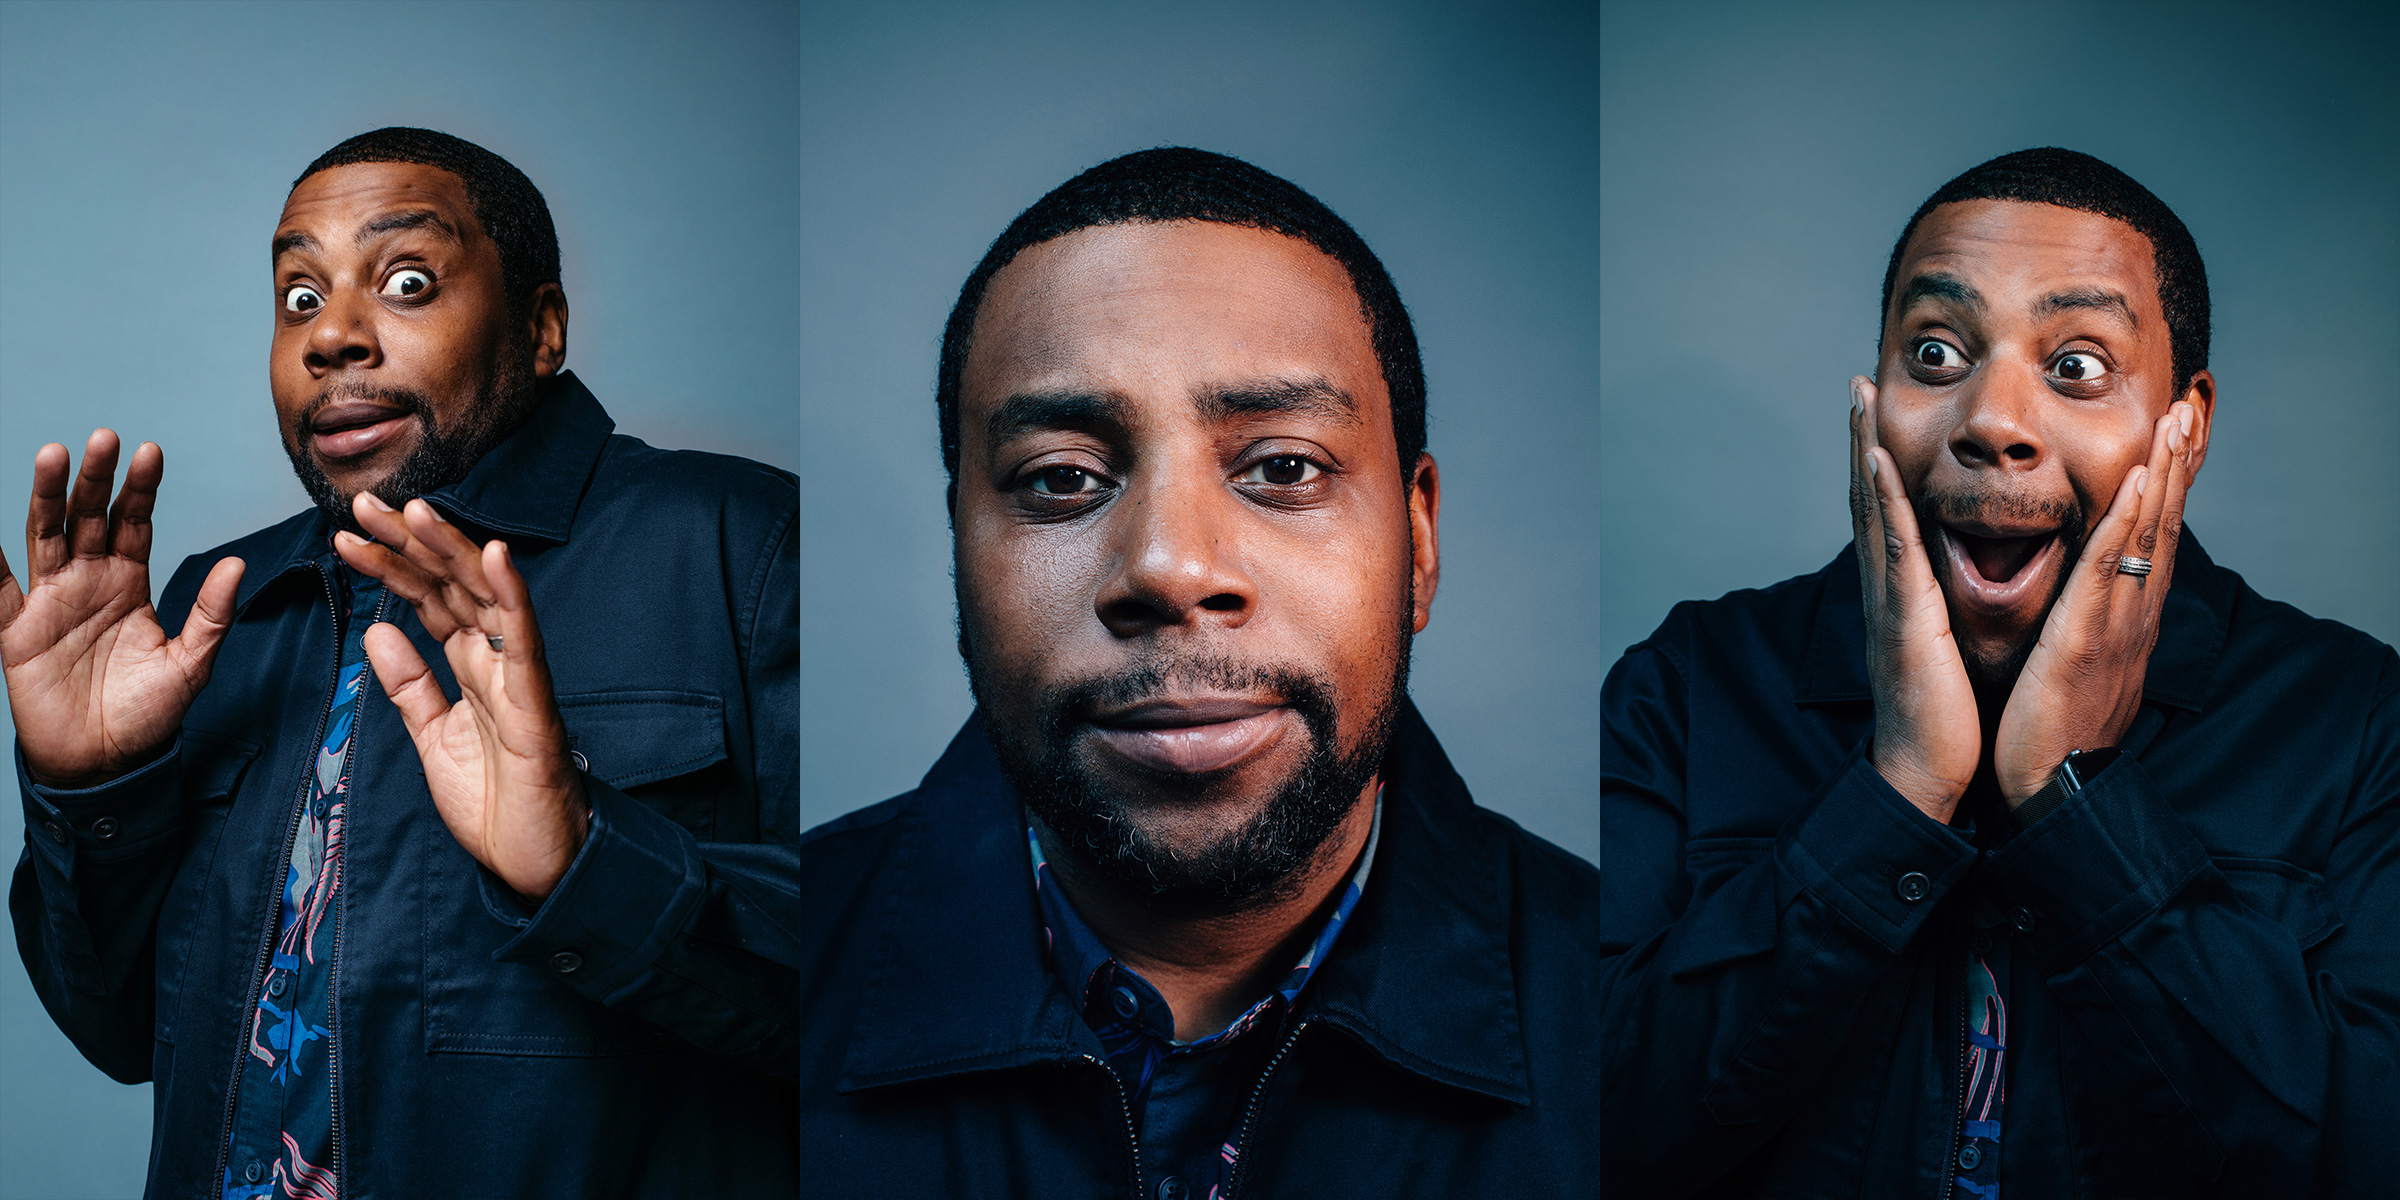 Kenan Thompson: Inside the quiet brilliance of SNL's longest